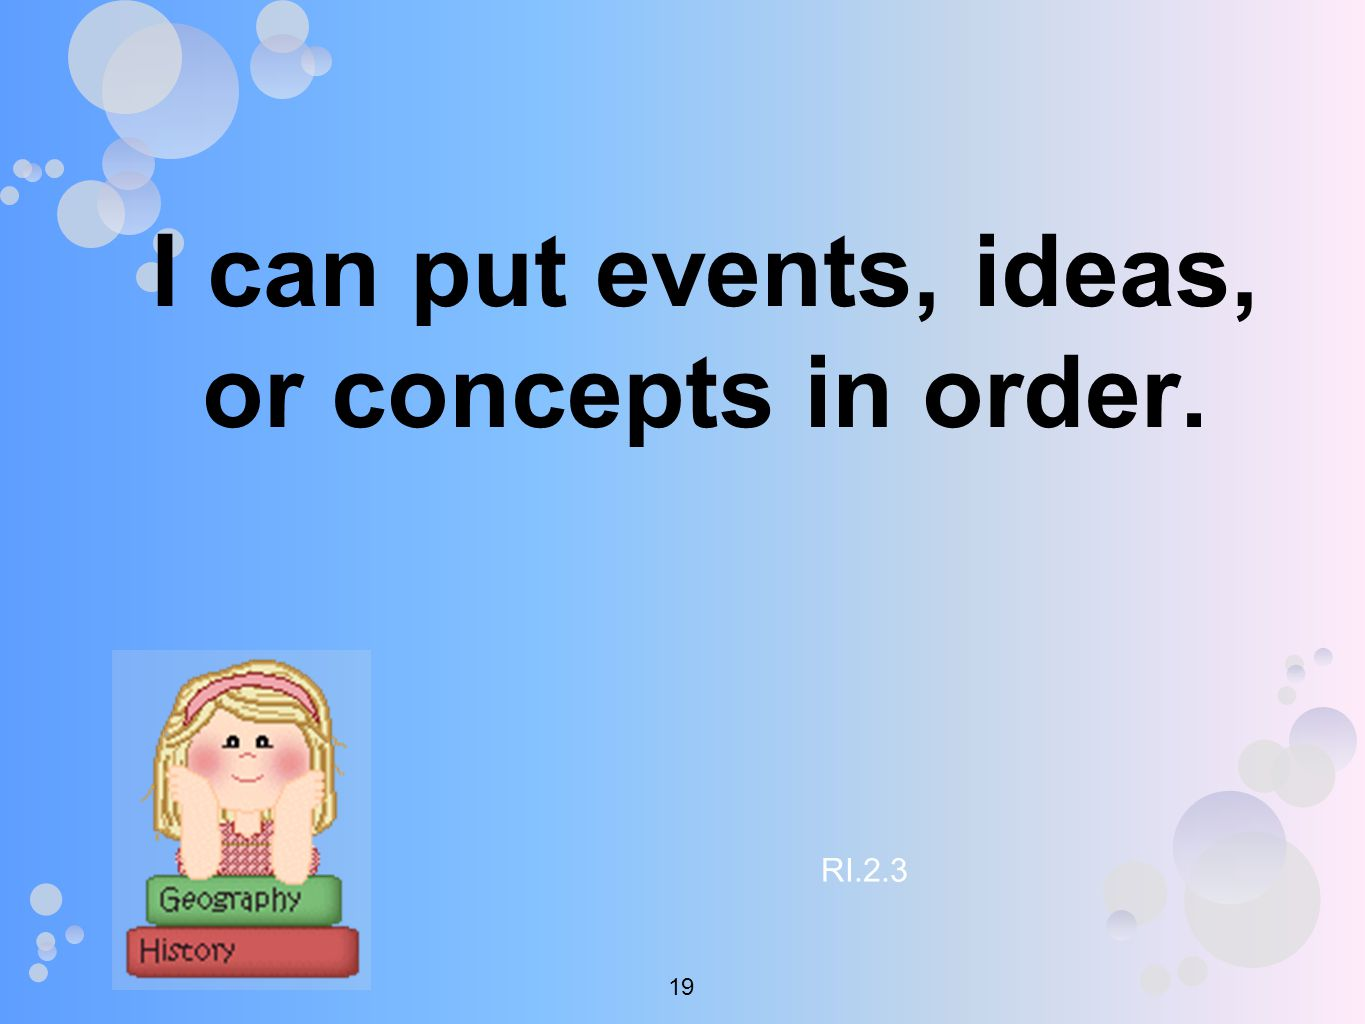 I can put events, ideas, or concepts in order. RI